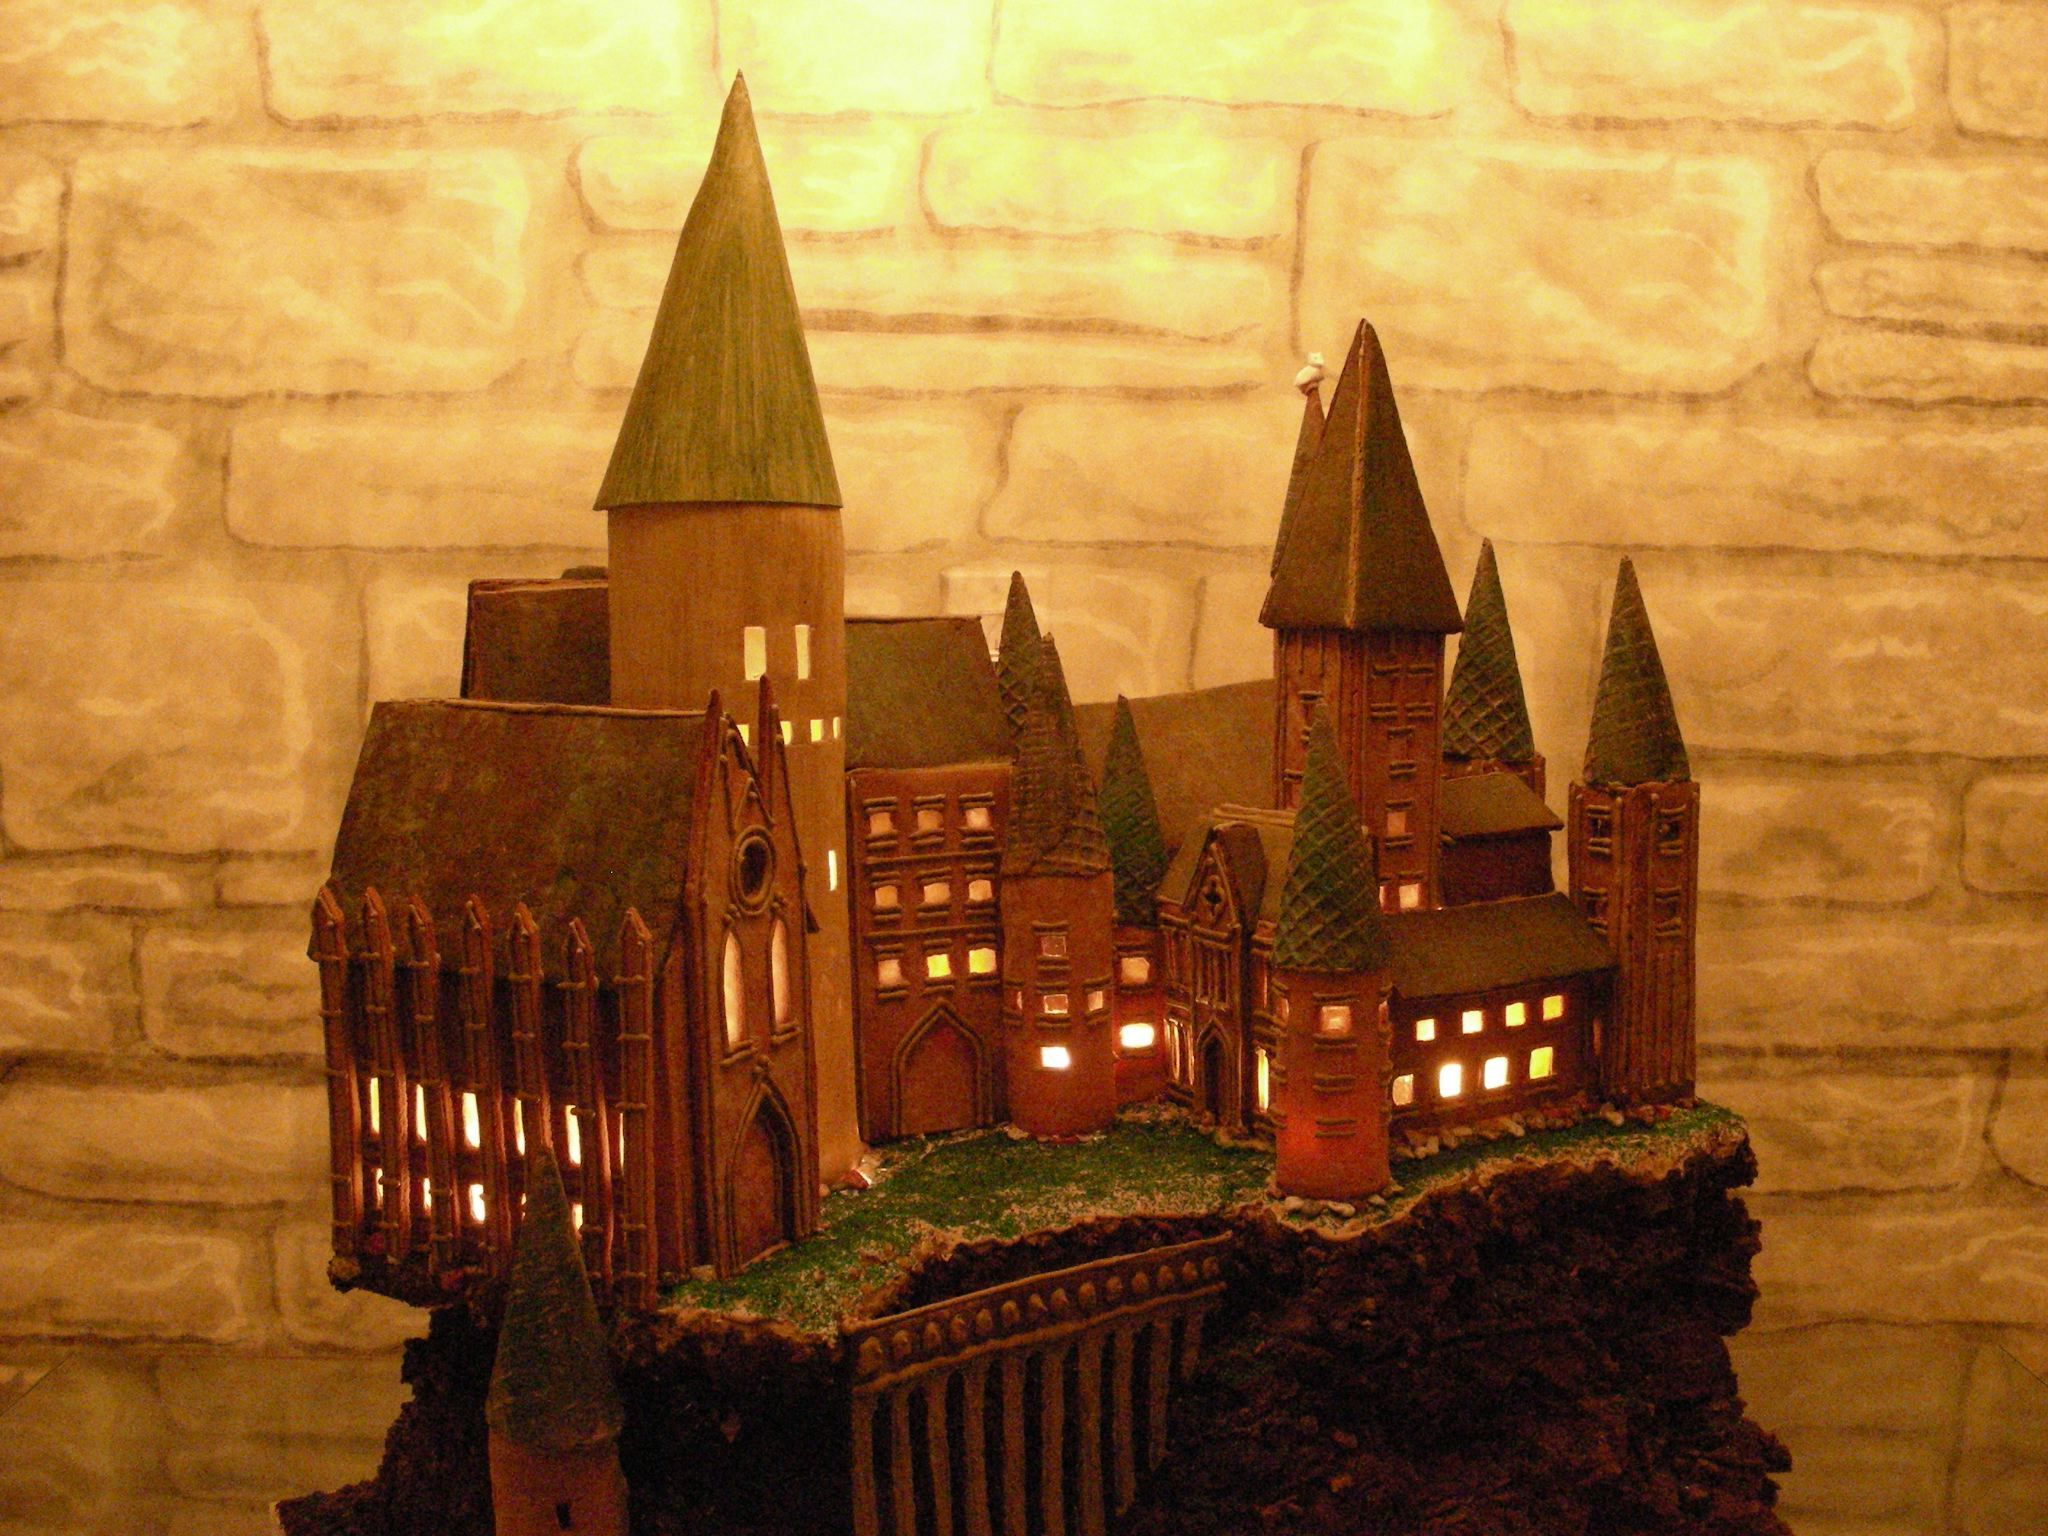 Hogwarts Gingerbread Castle Complete With Internal